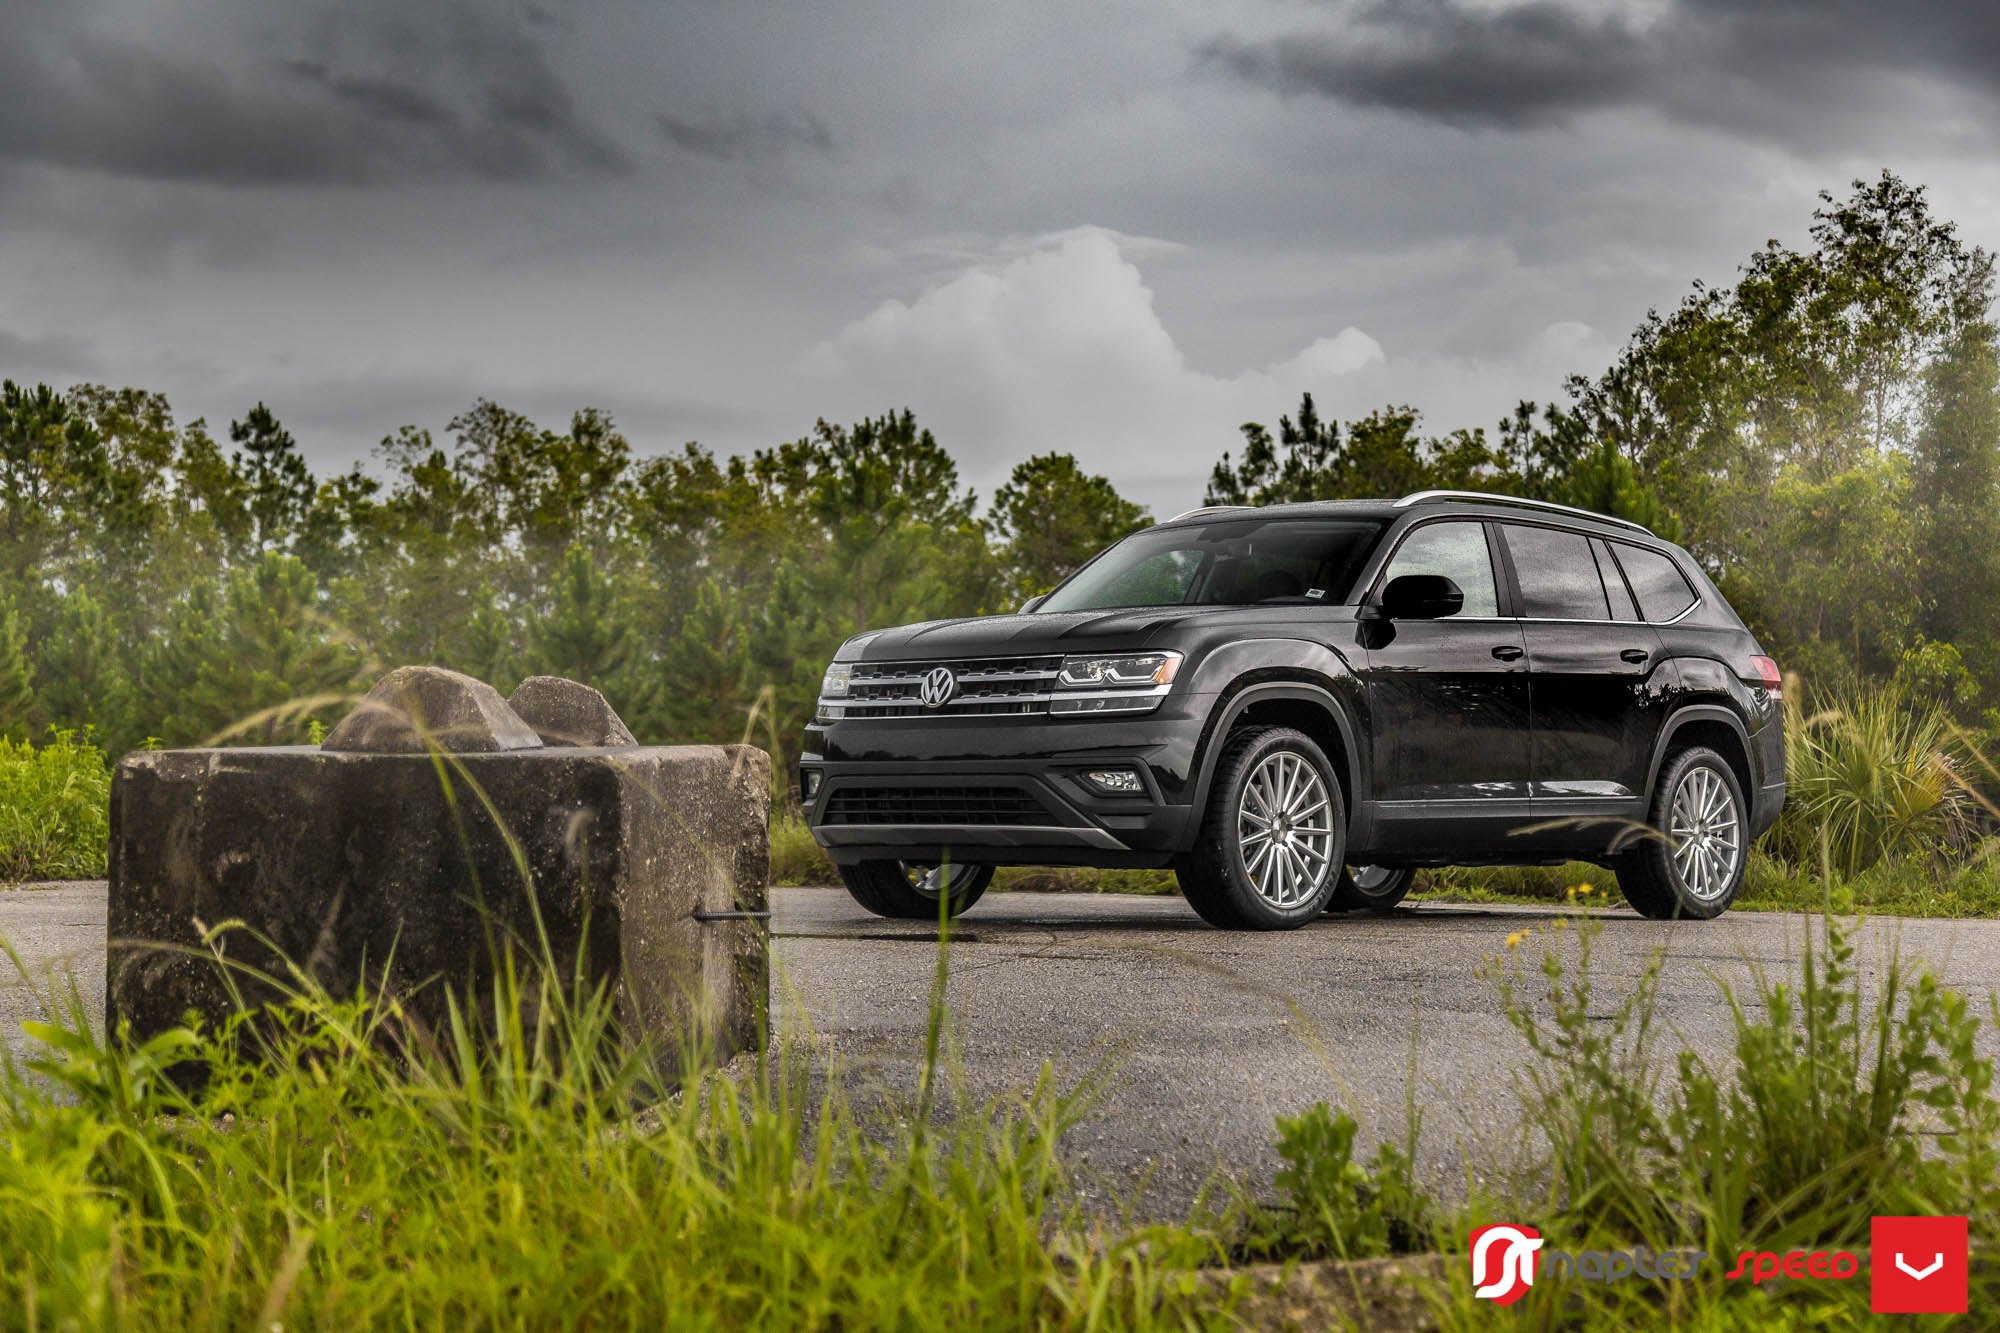 Nice Tuning Kit on Black VW Atlas — CARiD.com Gallery